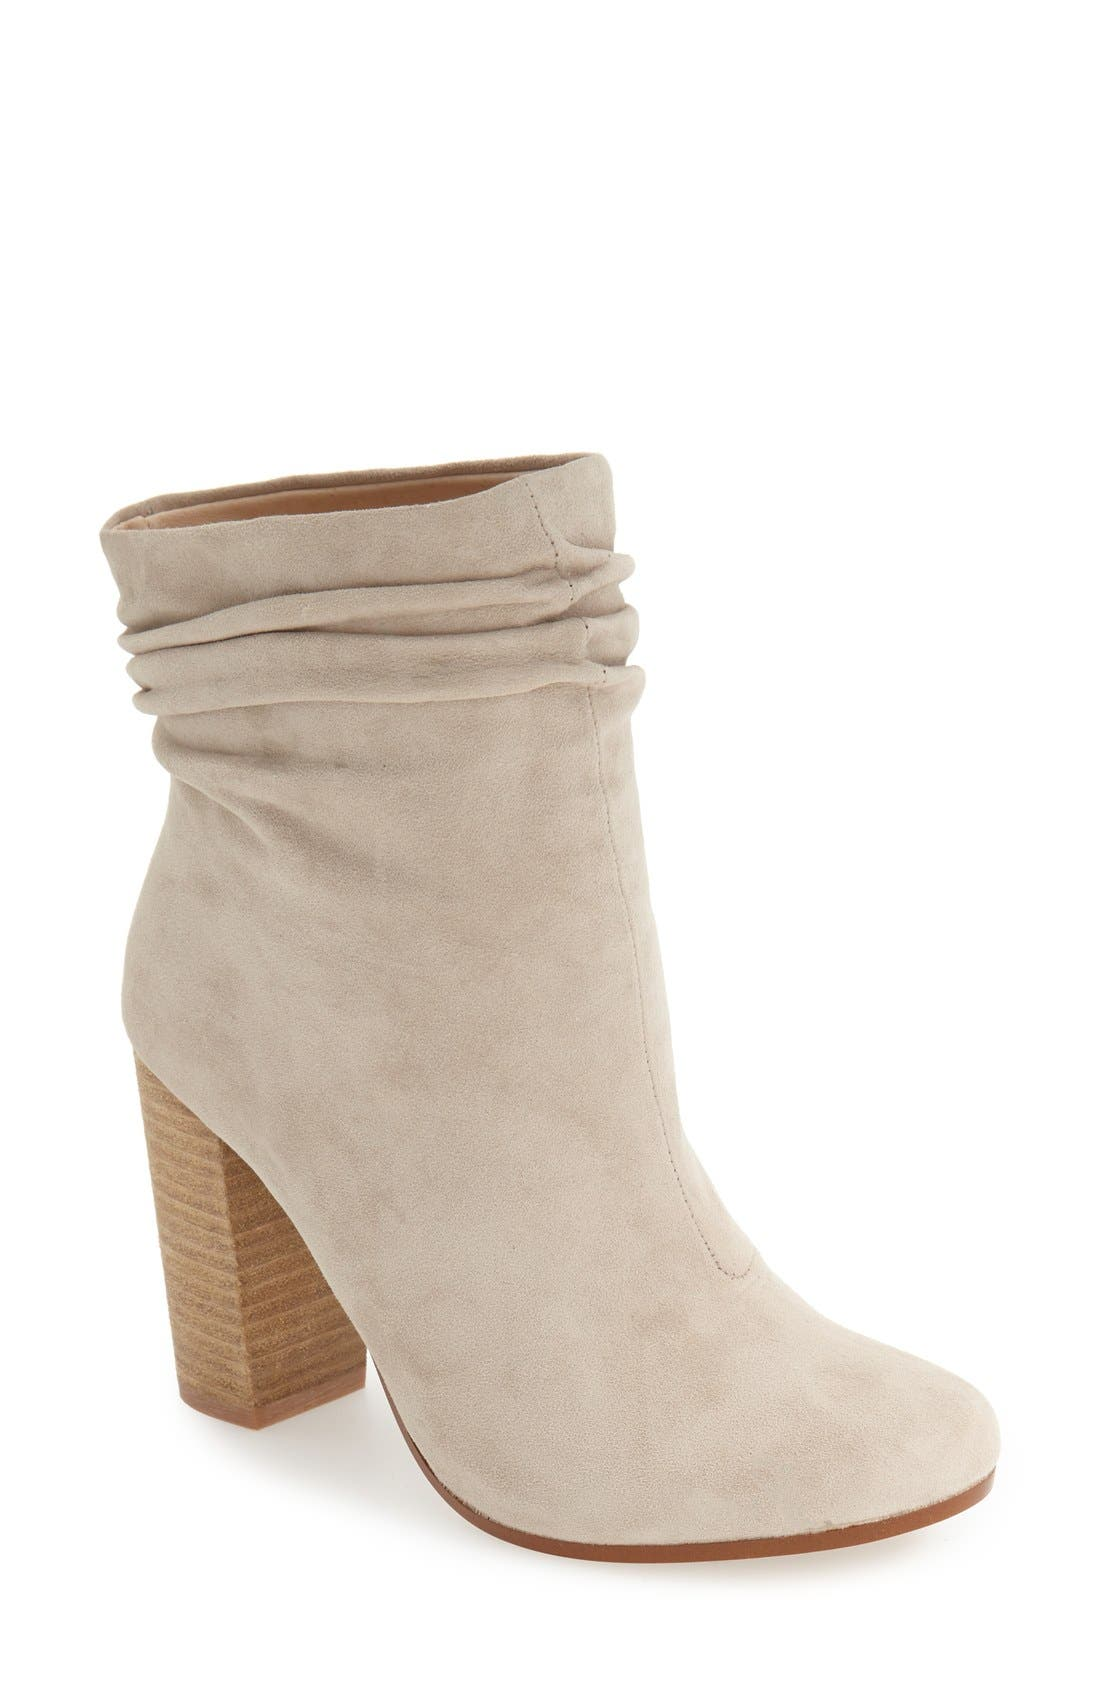 Kristin Cavallari 'Georgie' Block Heel Boot (Women)